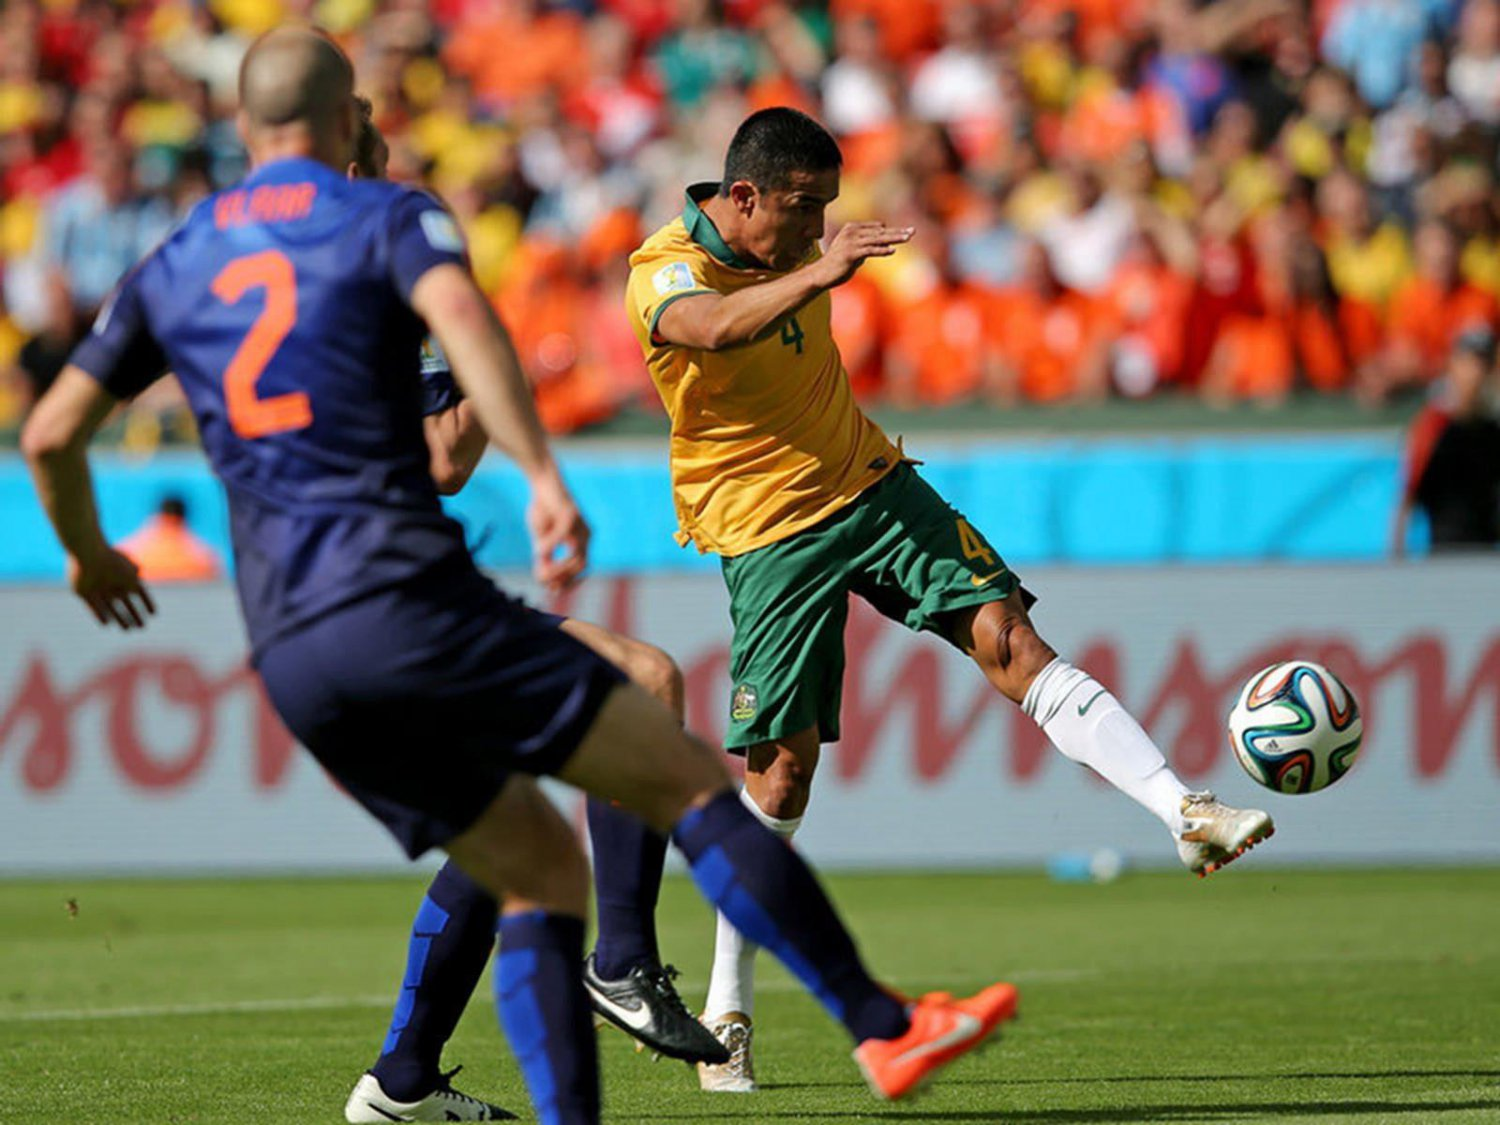 WC 0190 - 8 X 6 Photo - Football - FIFA World Cup 2014 - Holland V Australia - Cahill Wonder Goal